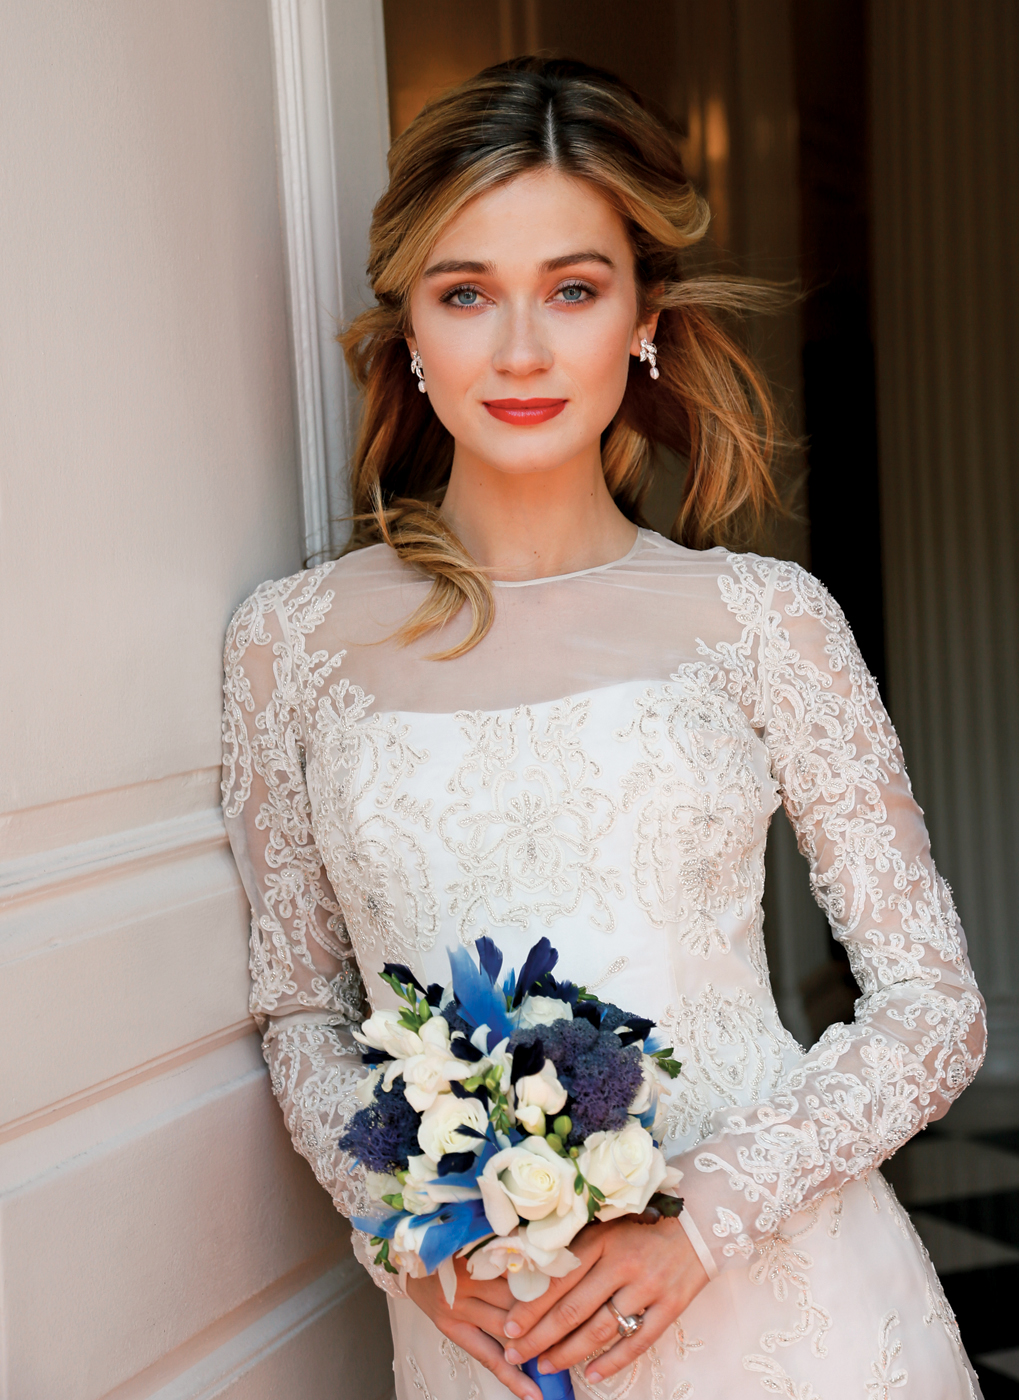 Makeup & Hair: Beauty By Terrie. Gown: Lucia Rodriguez (LW4672, $7400). Bouquet: Sandra's & Donath's.